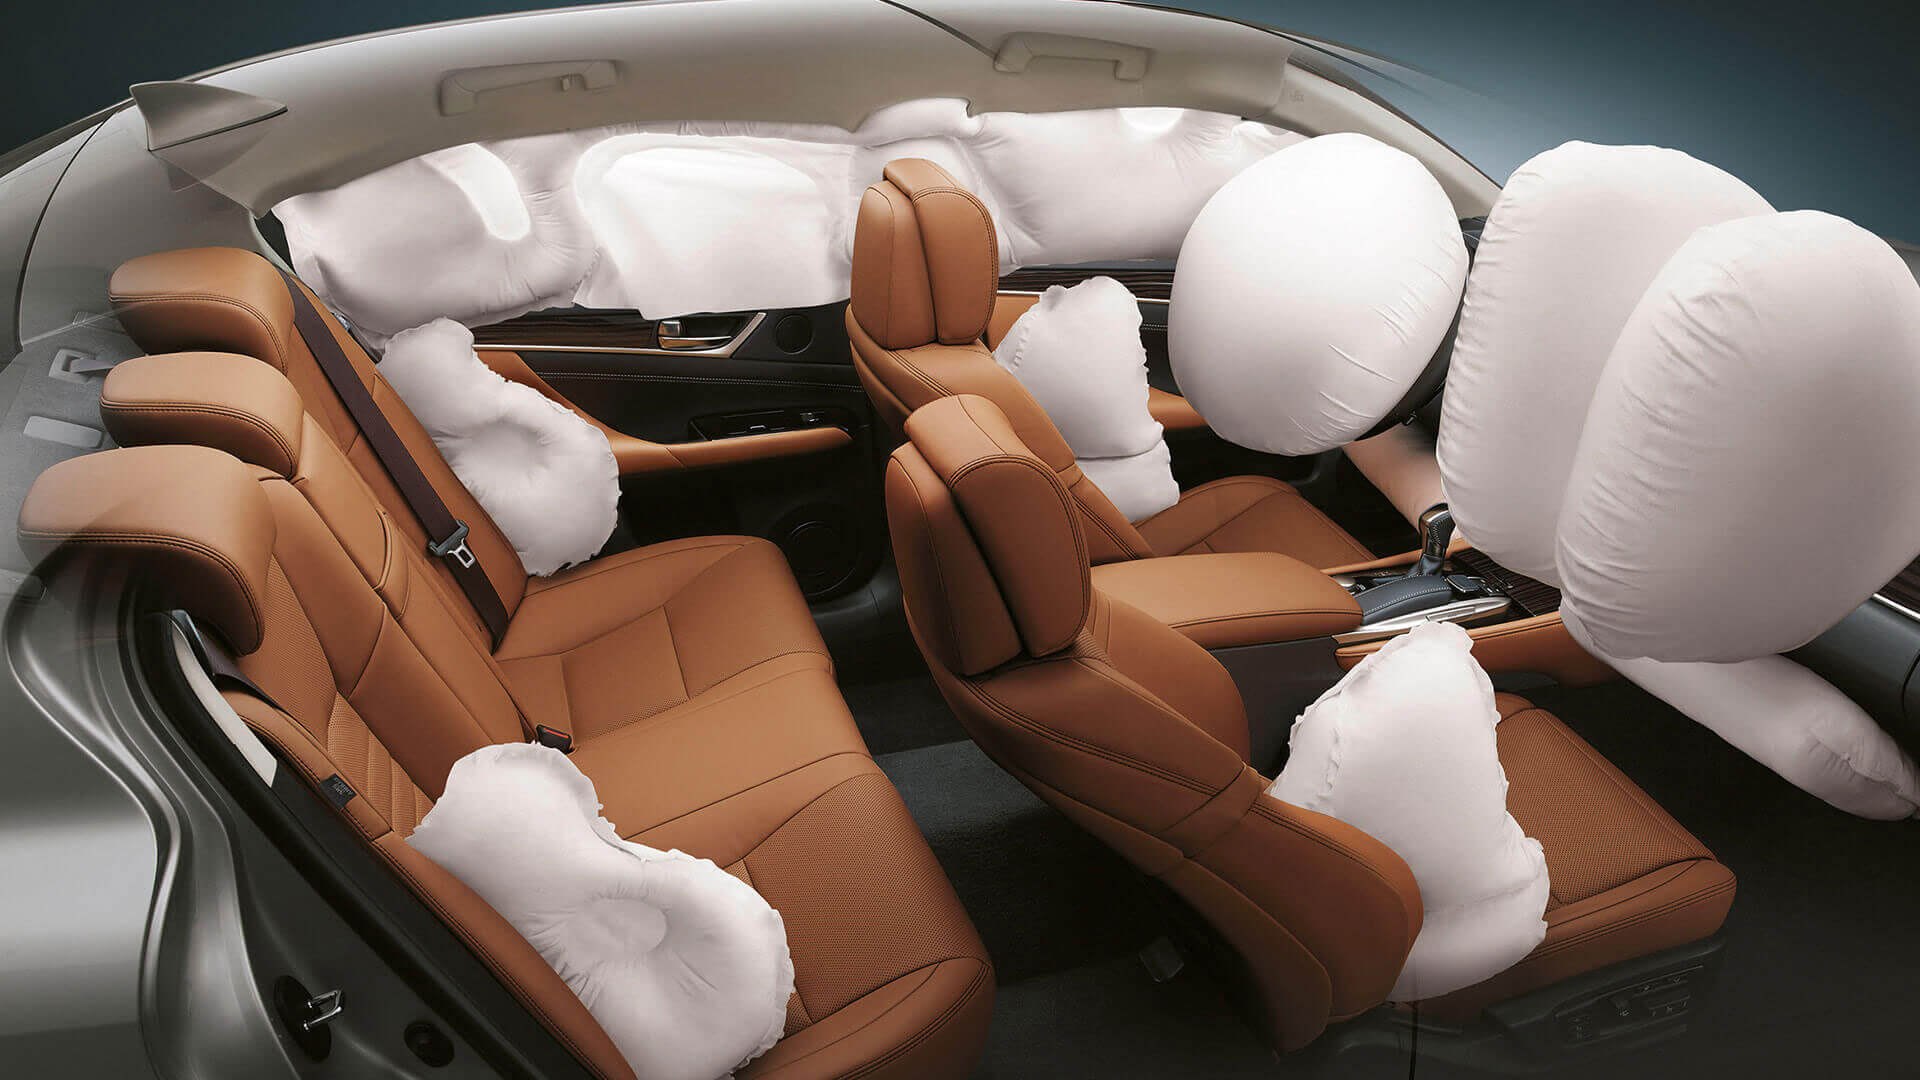 2016 lexus gs 300h features airbags